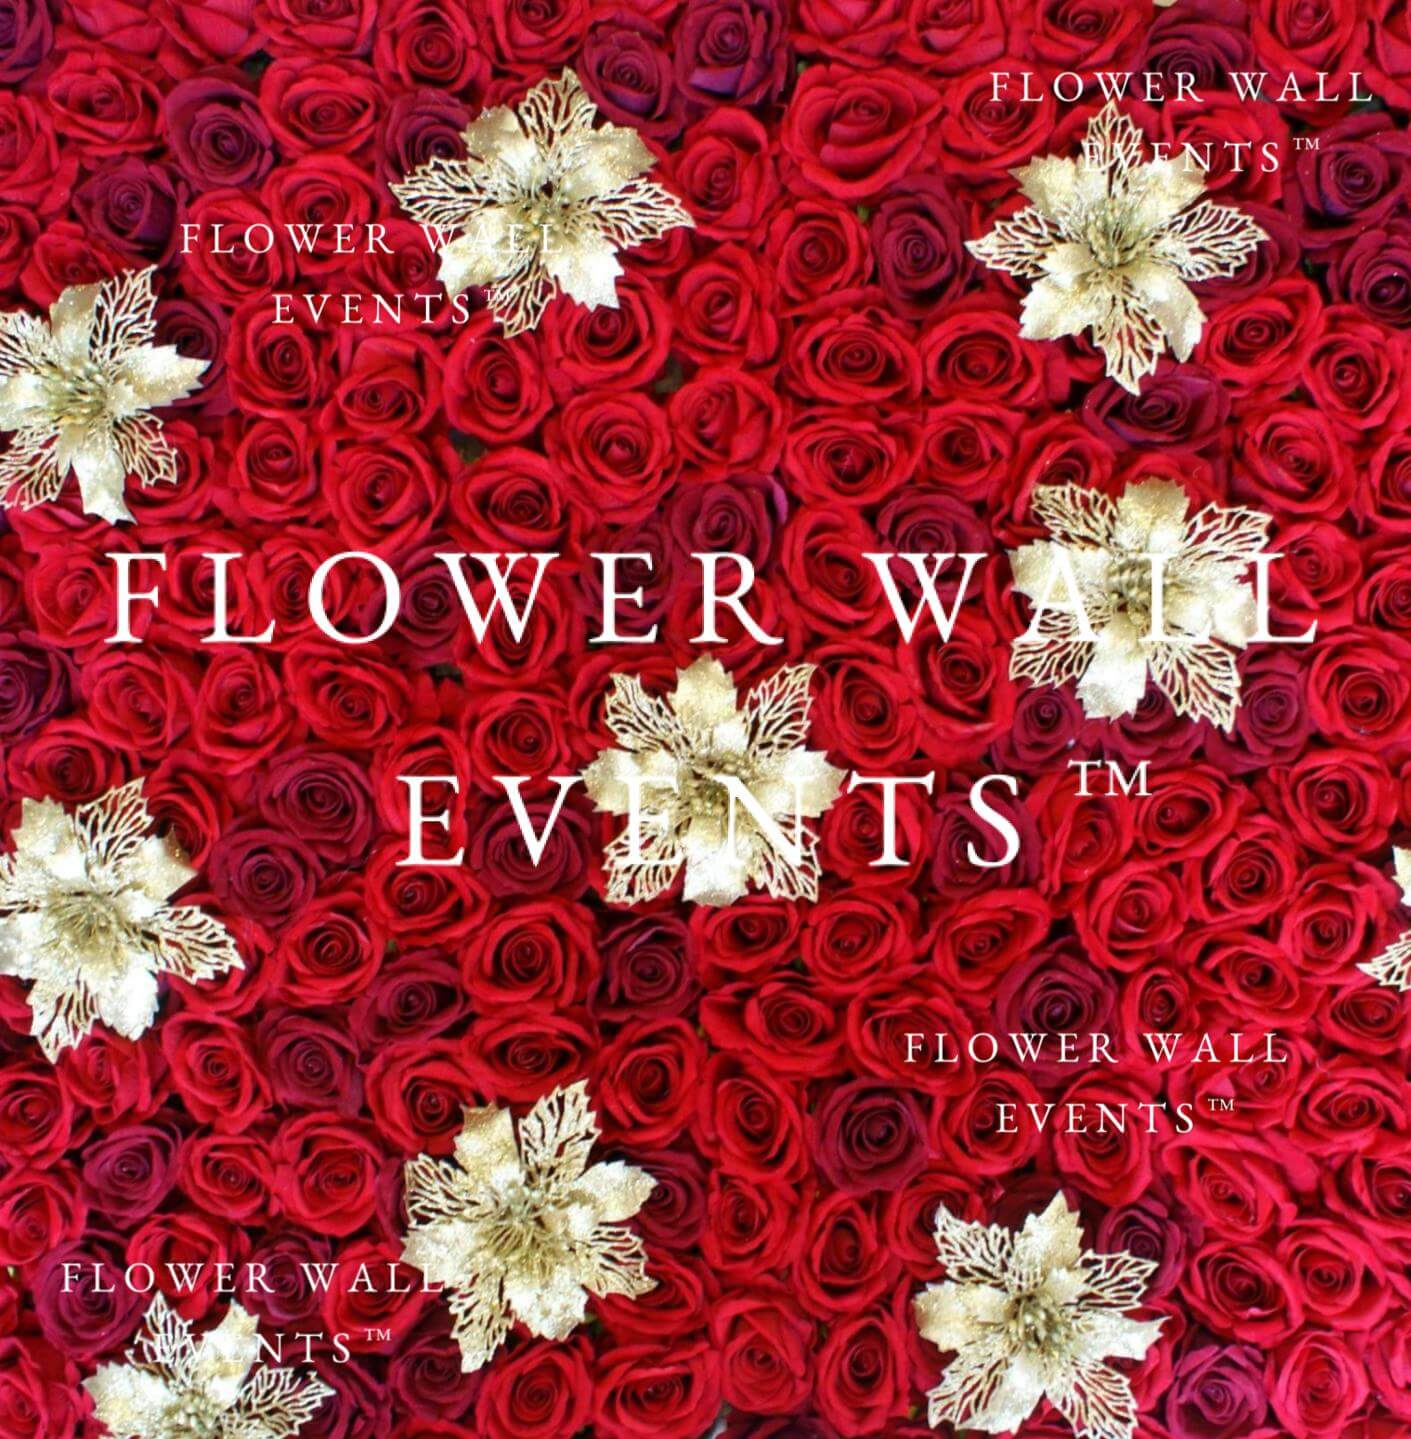 Flower Walls Melbourne Flower Wall Events No 1 Flower Wall Hire Melbourne Company